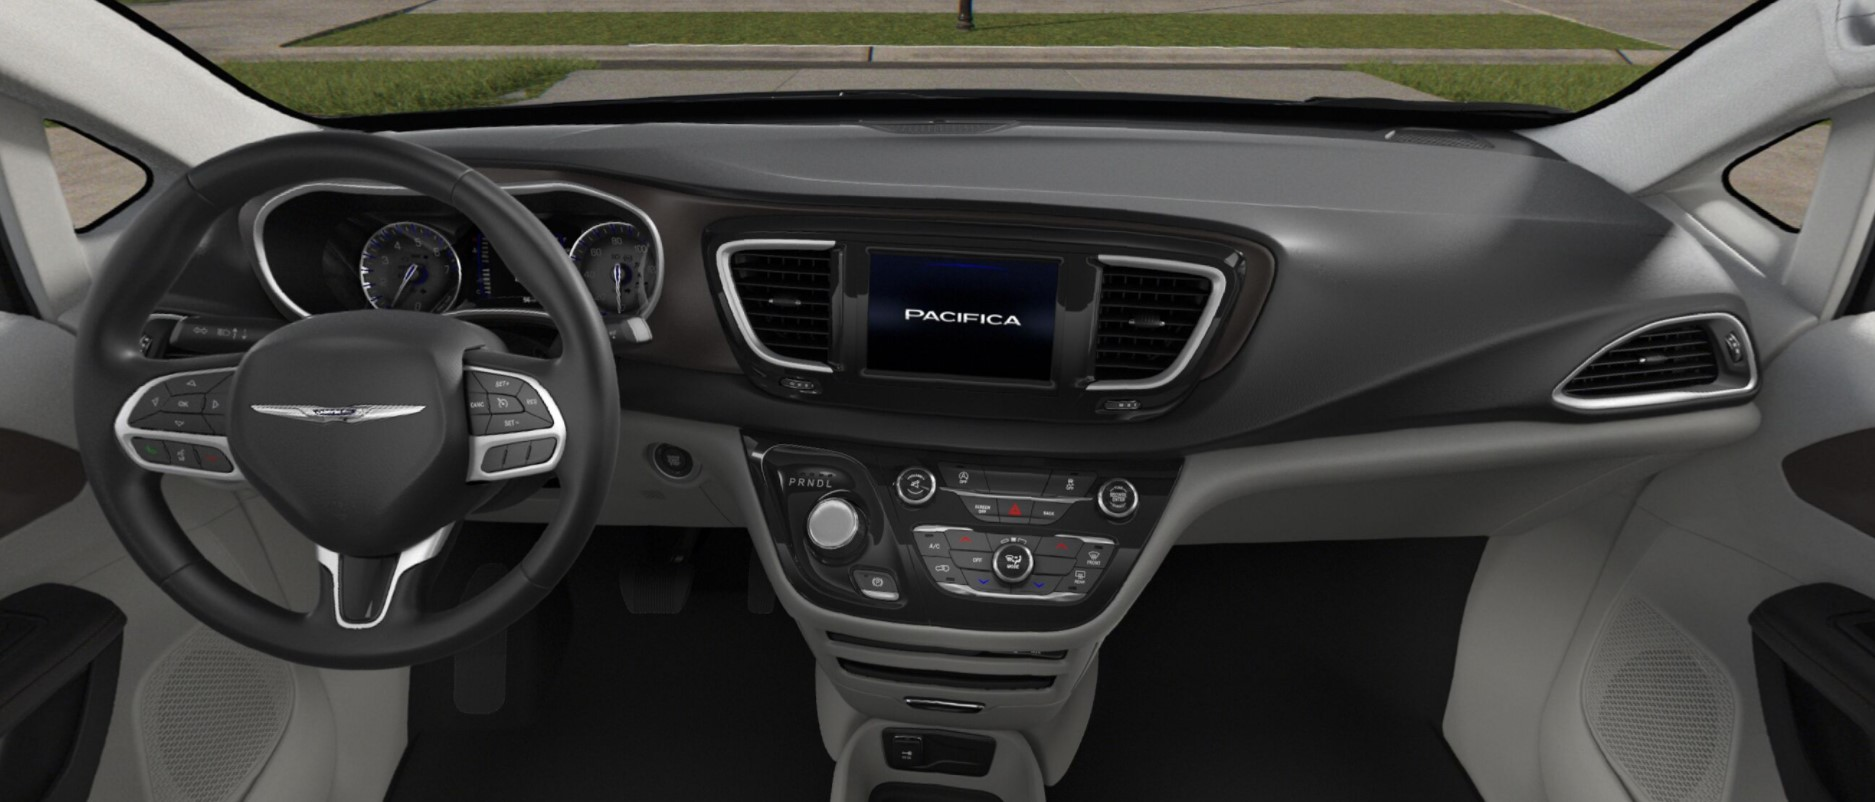 2018 Chrysler Pacifica L Black and White Interior